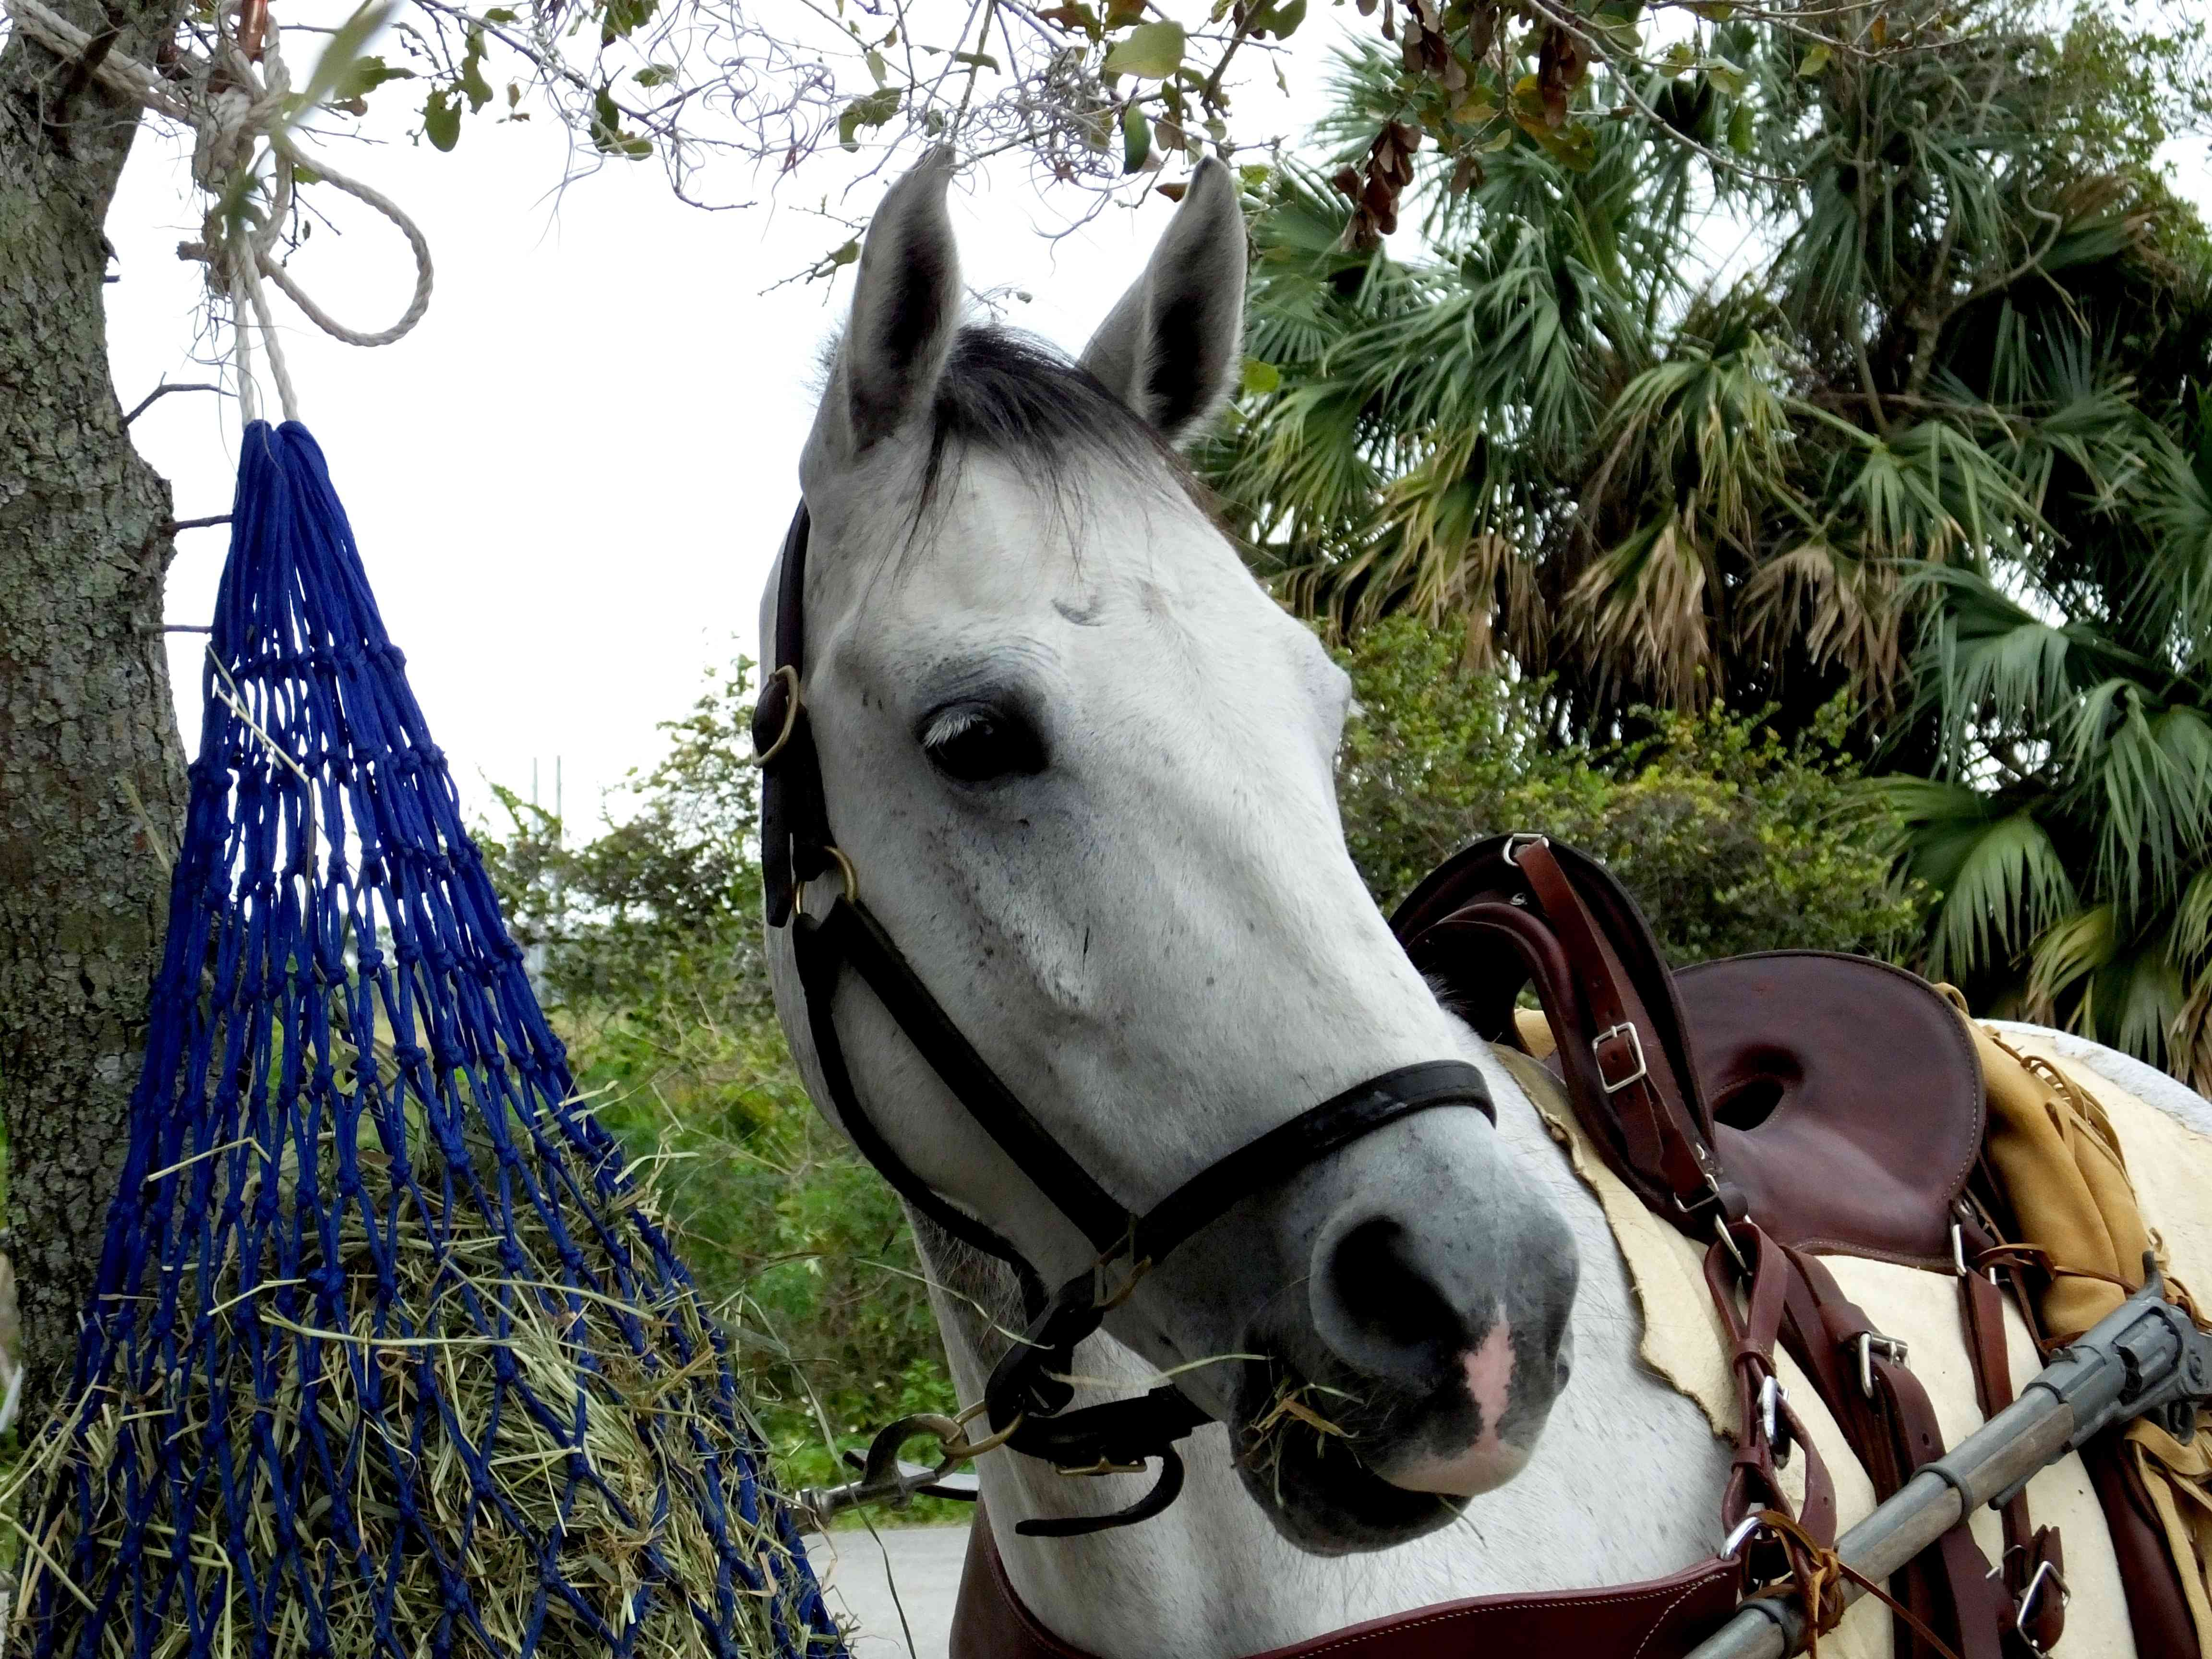 Grey Florida Cracker Horse eating from a hay net.